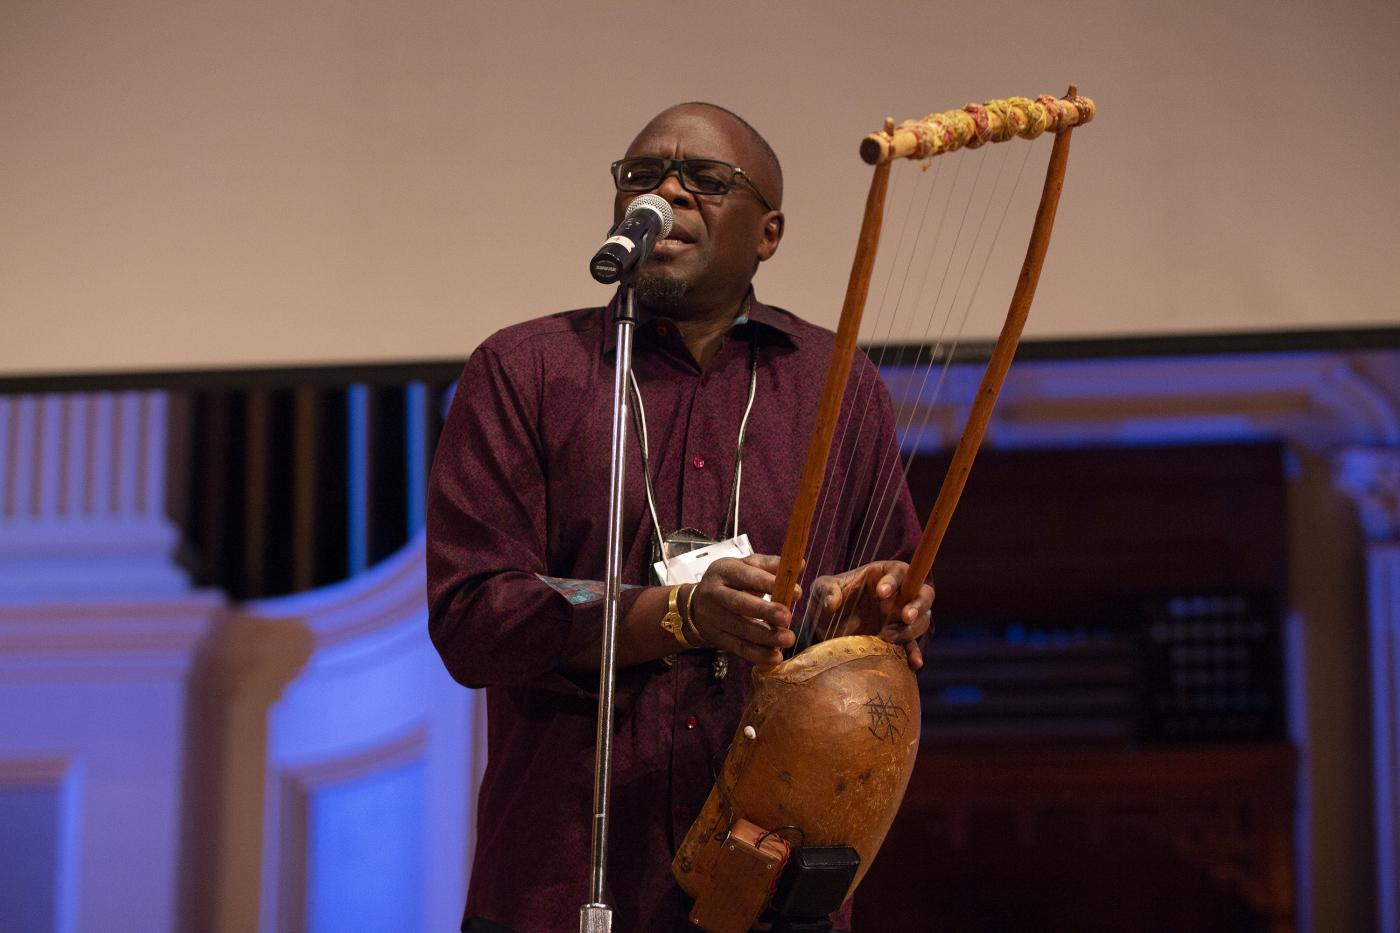 artist Samite Mulondo plays a litungu, a seven stringed instrument, and sings into a standing mic at the 2018 Idea Swap on the Great Hall stage at Mechanics Hall. Samite's eyes are closed as he performs. Blue lighting on the stage and a blank projector screen are seen in the background.